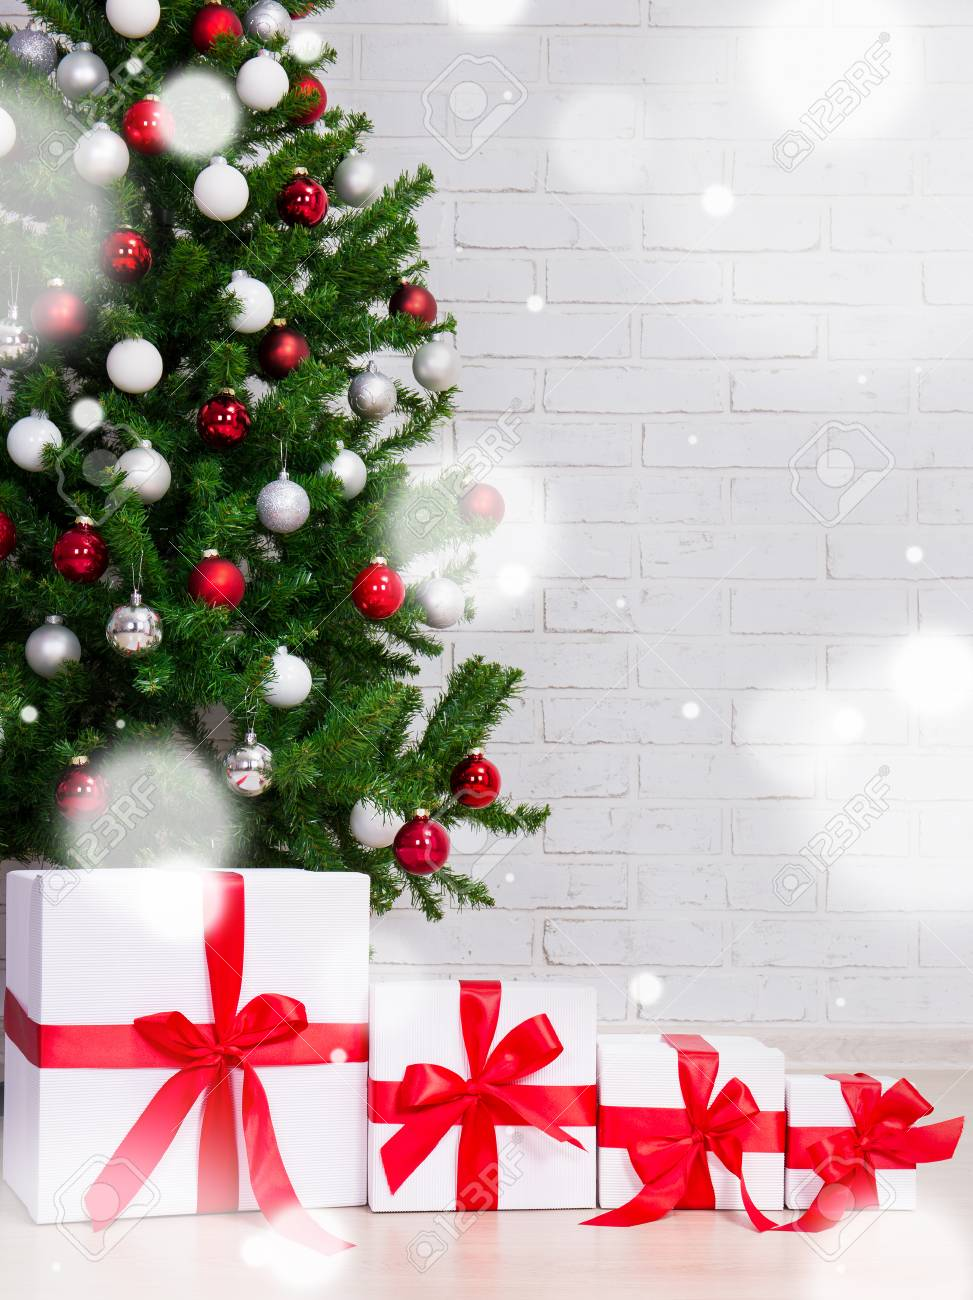 christmas background gift boxes under decorated christmas tree over brick wall and flying snow flakes